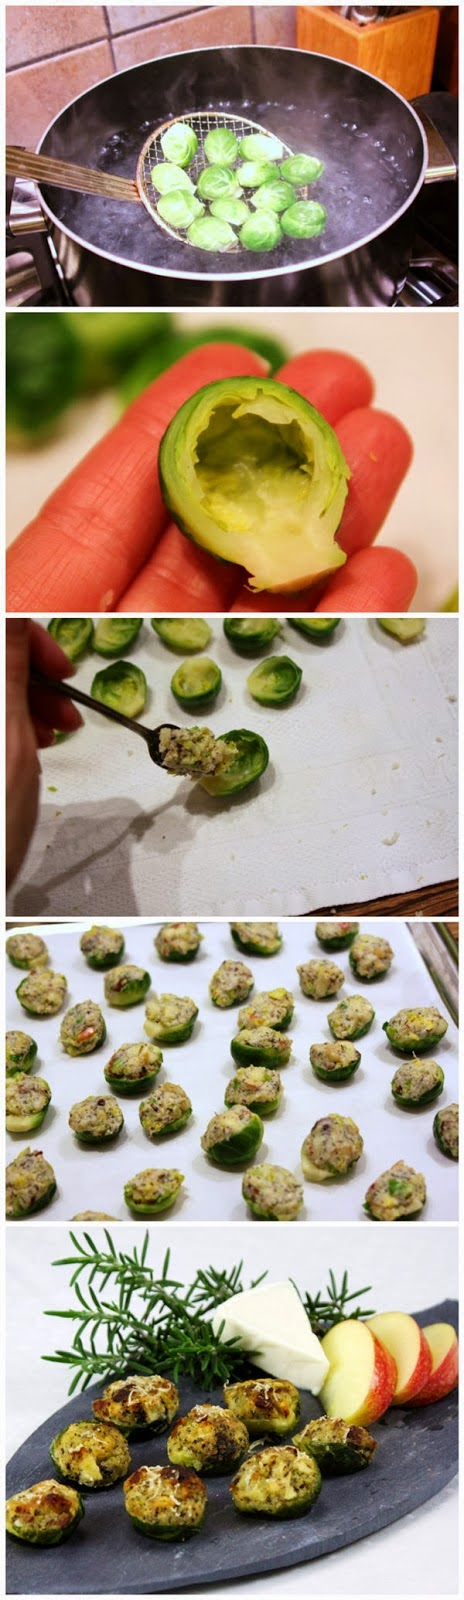 Apple and Bacon Stuffed Brussels Sprouts